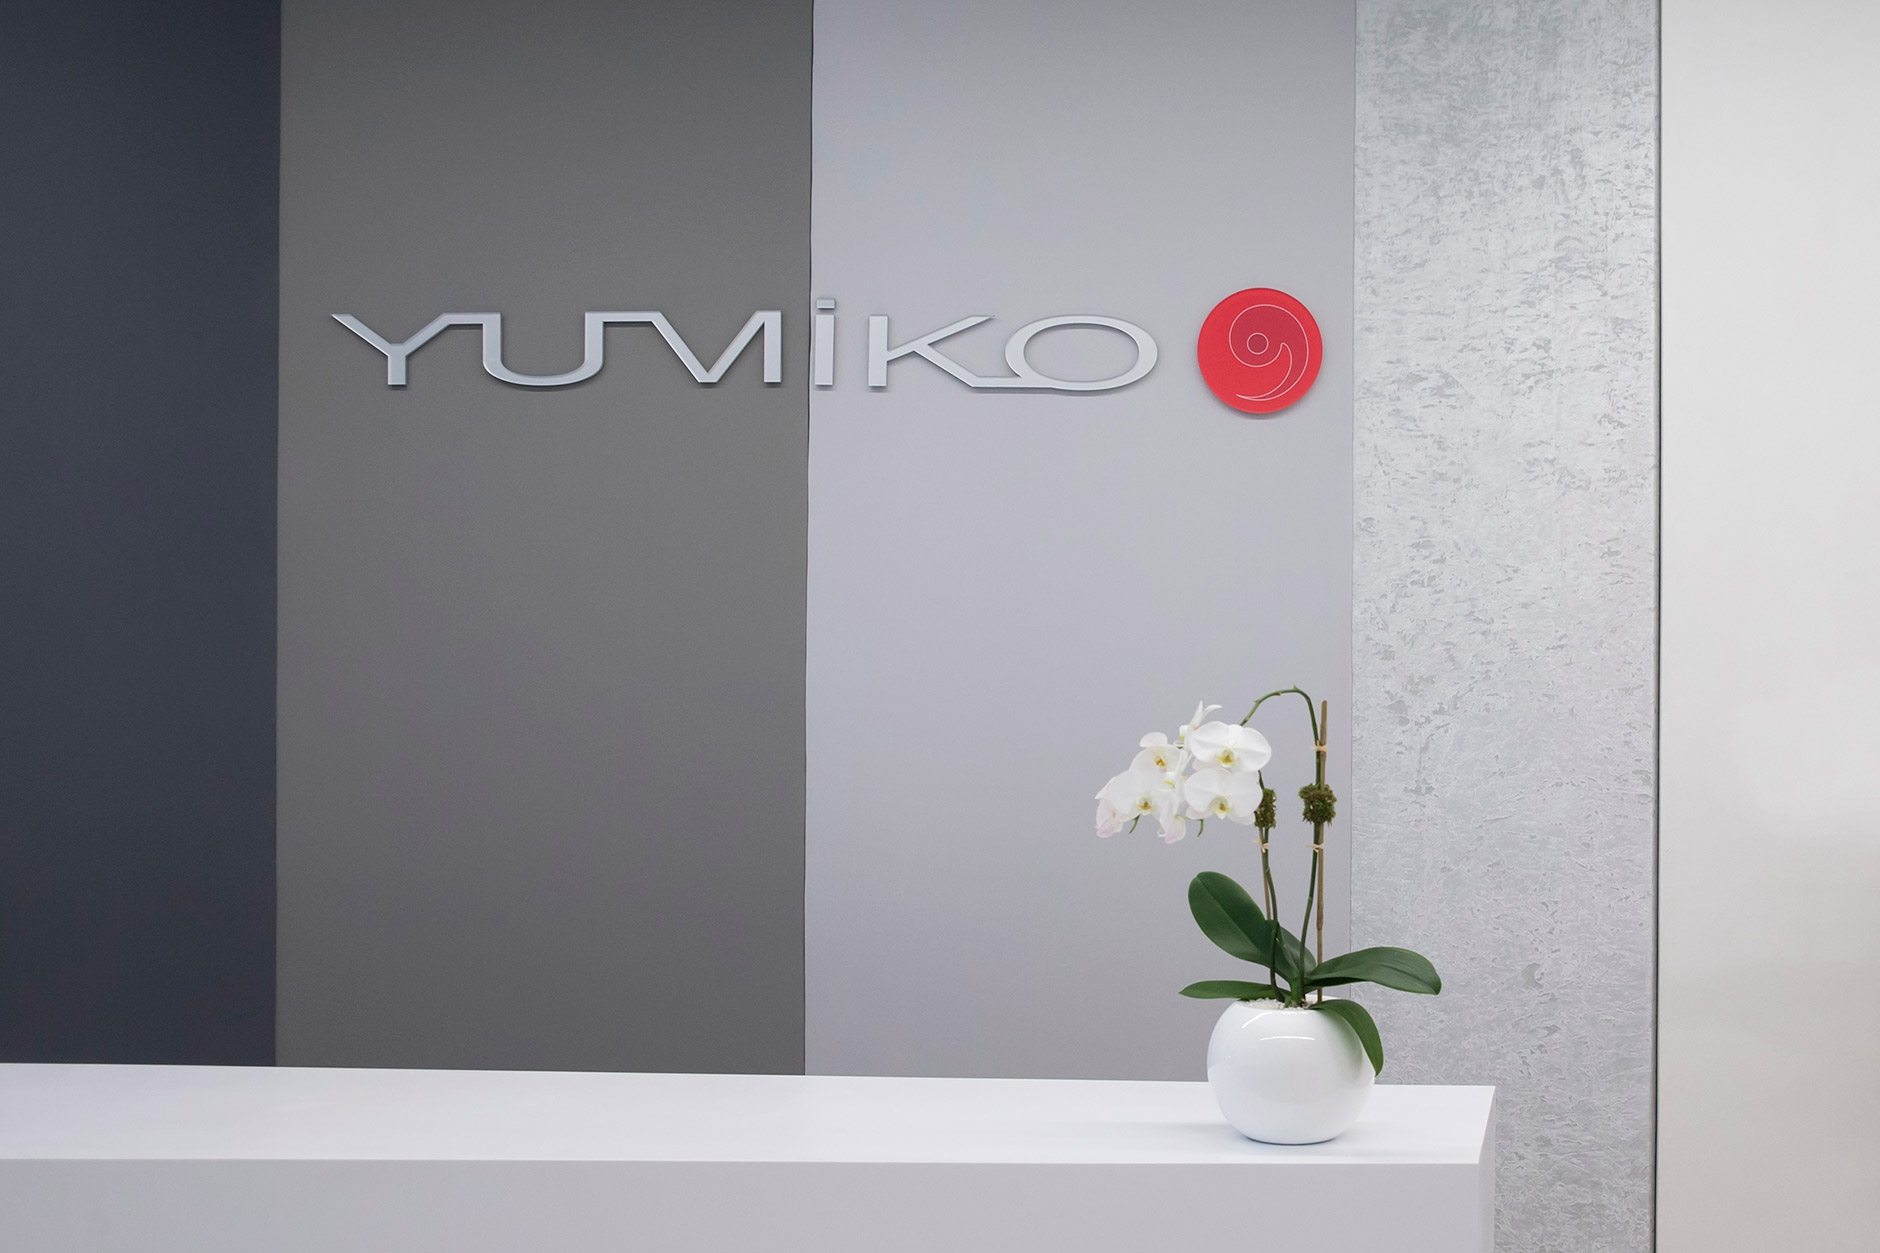 Yumiko New York Boutique Counter